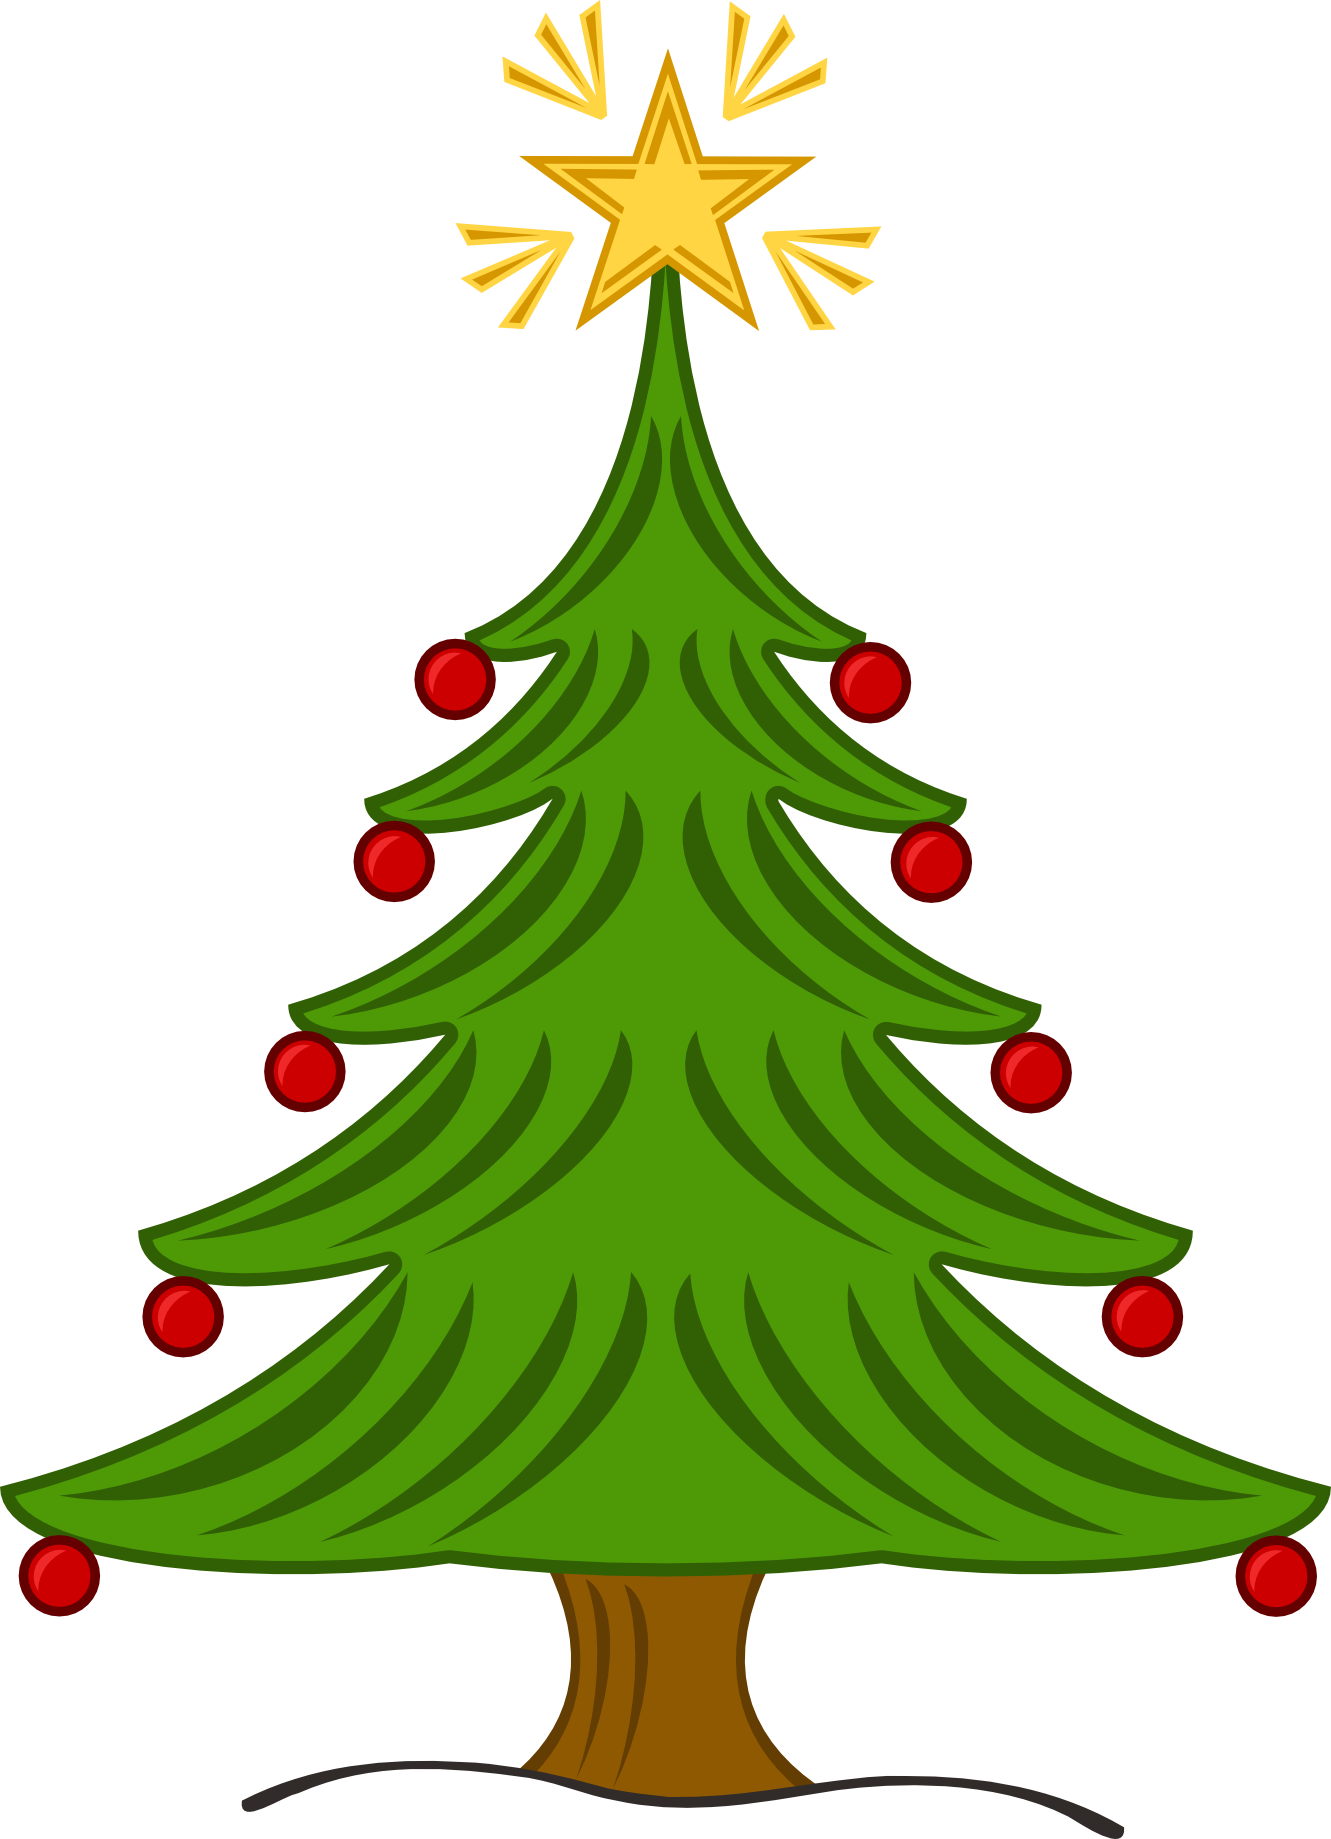 Christmas Tree Clipart Black And White | Clipart Panda - Free Clipart Images